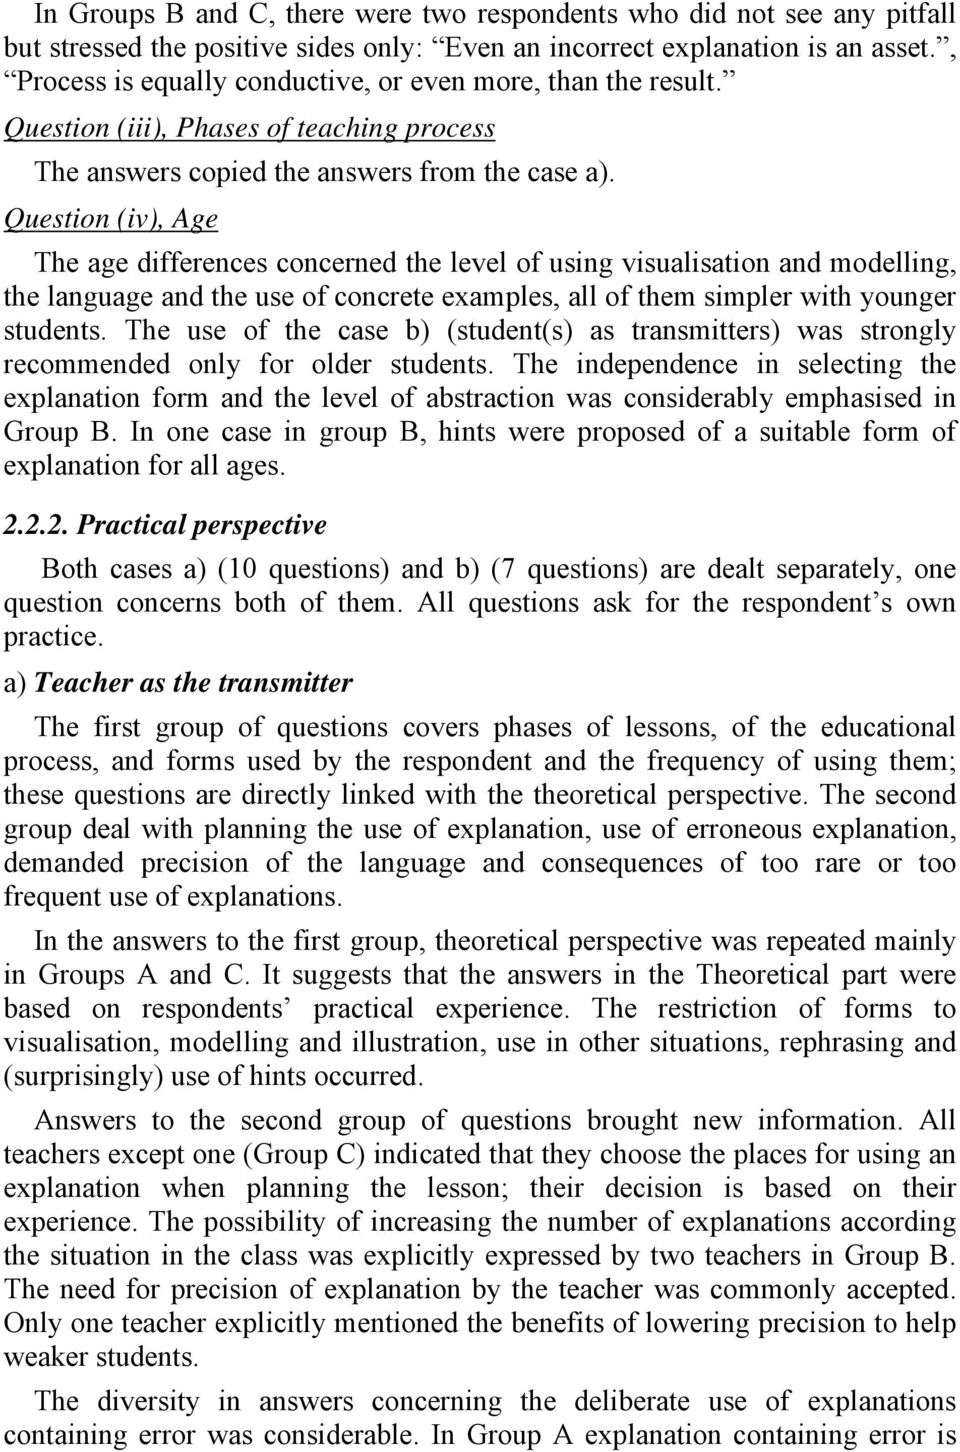 Question (iv), Age The age differences concerned the level of using visualisation and modelling, the language and the use of concrete examples, all of them simpler with younger students.